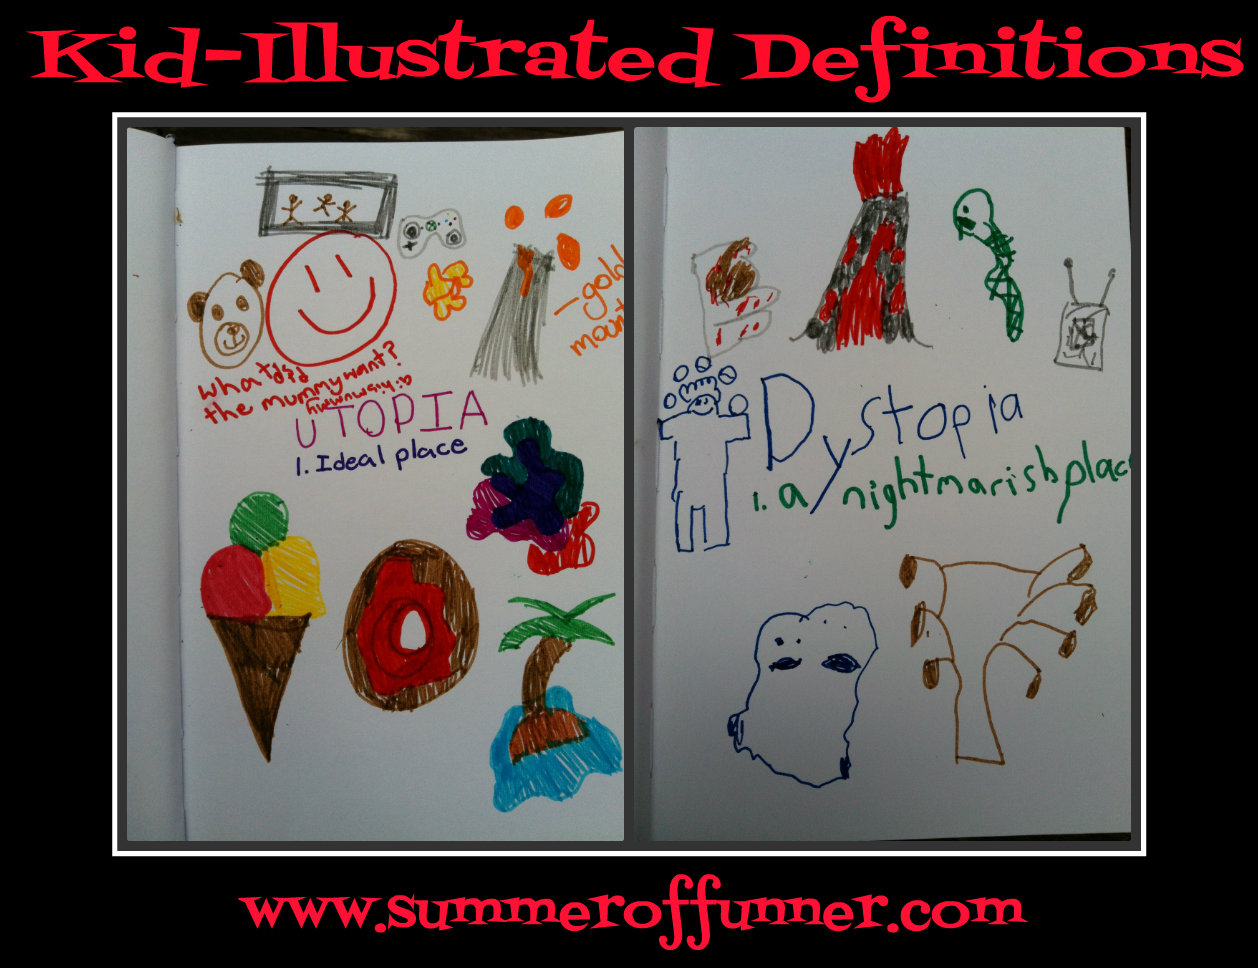 kid-illustrated definitions i: utopia & dystopia | summer of funner